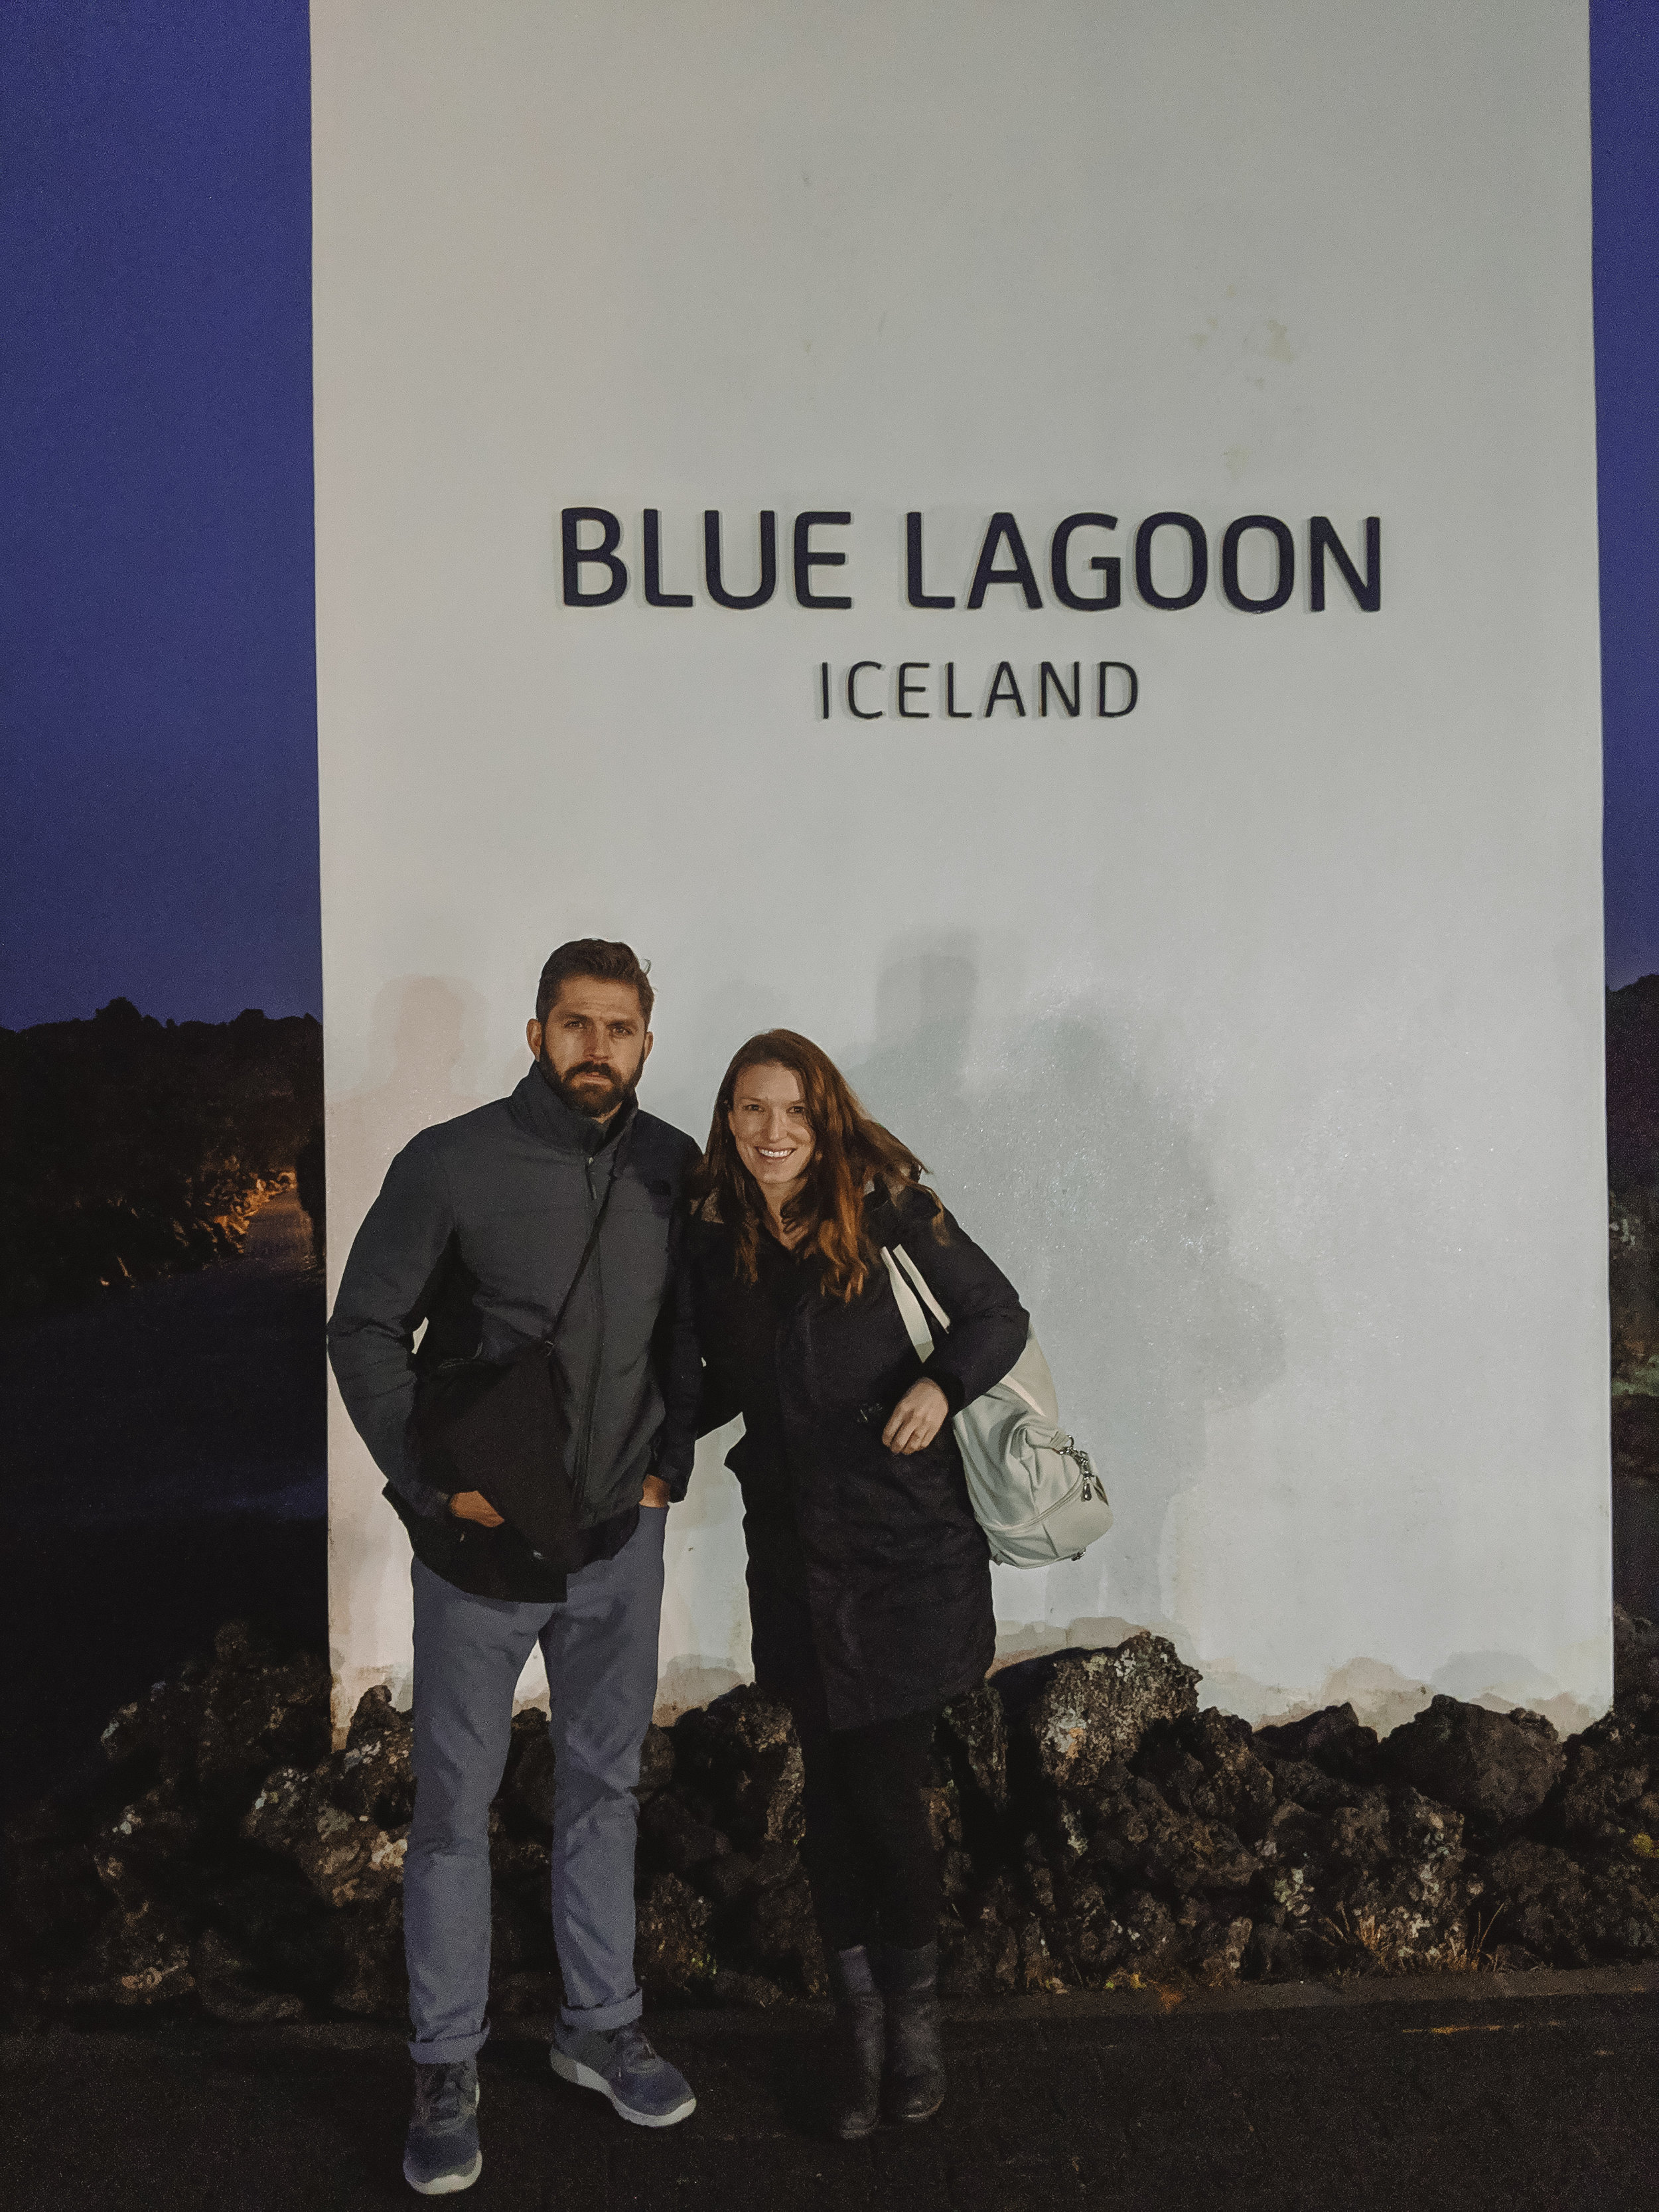 The first thing I wanted to do was go to the Blue Lagoon. I had heard that it gets really crowded, but that if you're there first thing in the morning it's not too bad. We were there almost a half hour before they opened at 8AM, which was great because we had the whole place basically to ourselves for the first 20 minutes or so. I would have loved to stay longer but we had places to go!